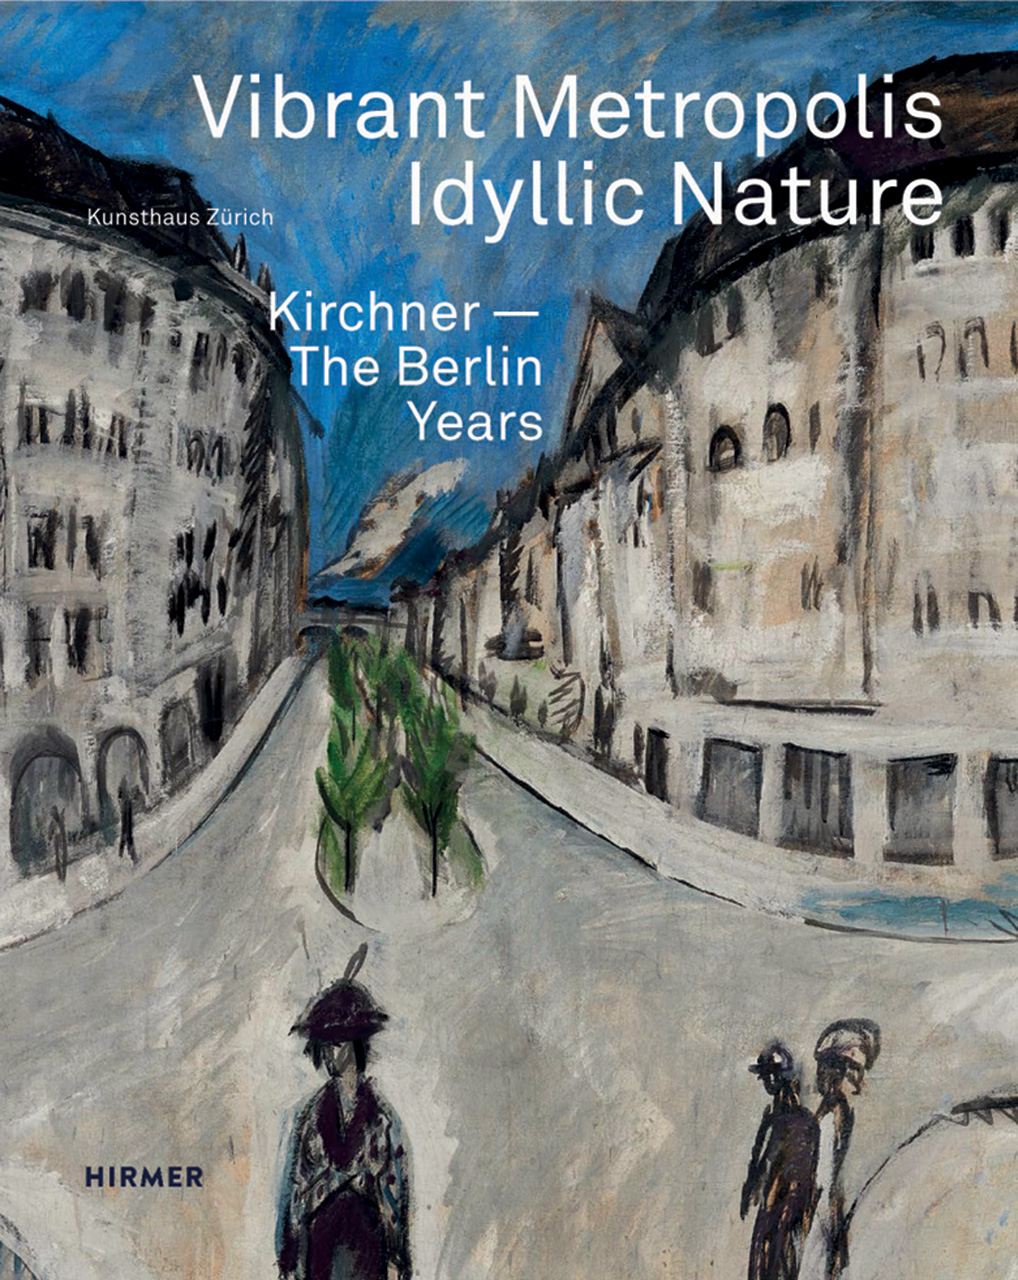 Vibrant Metropolis / Idyllic Nature: Kirchner. The Berlin Years